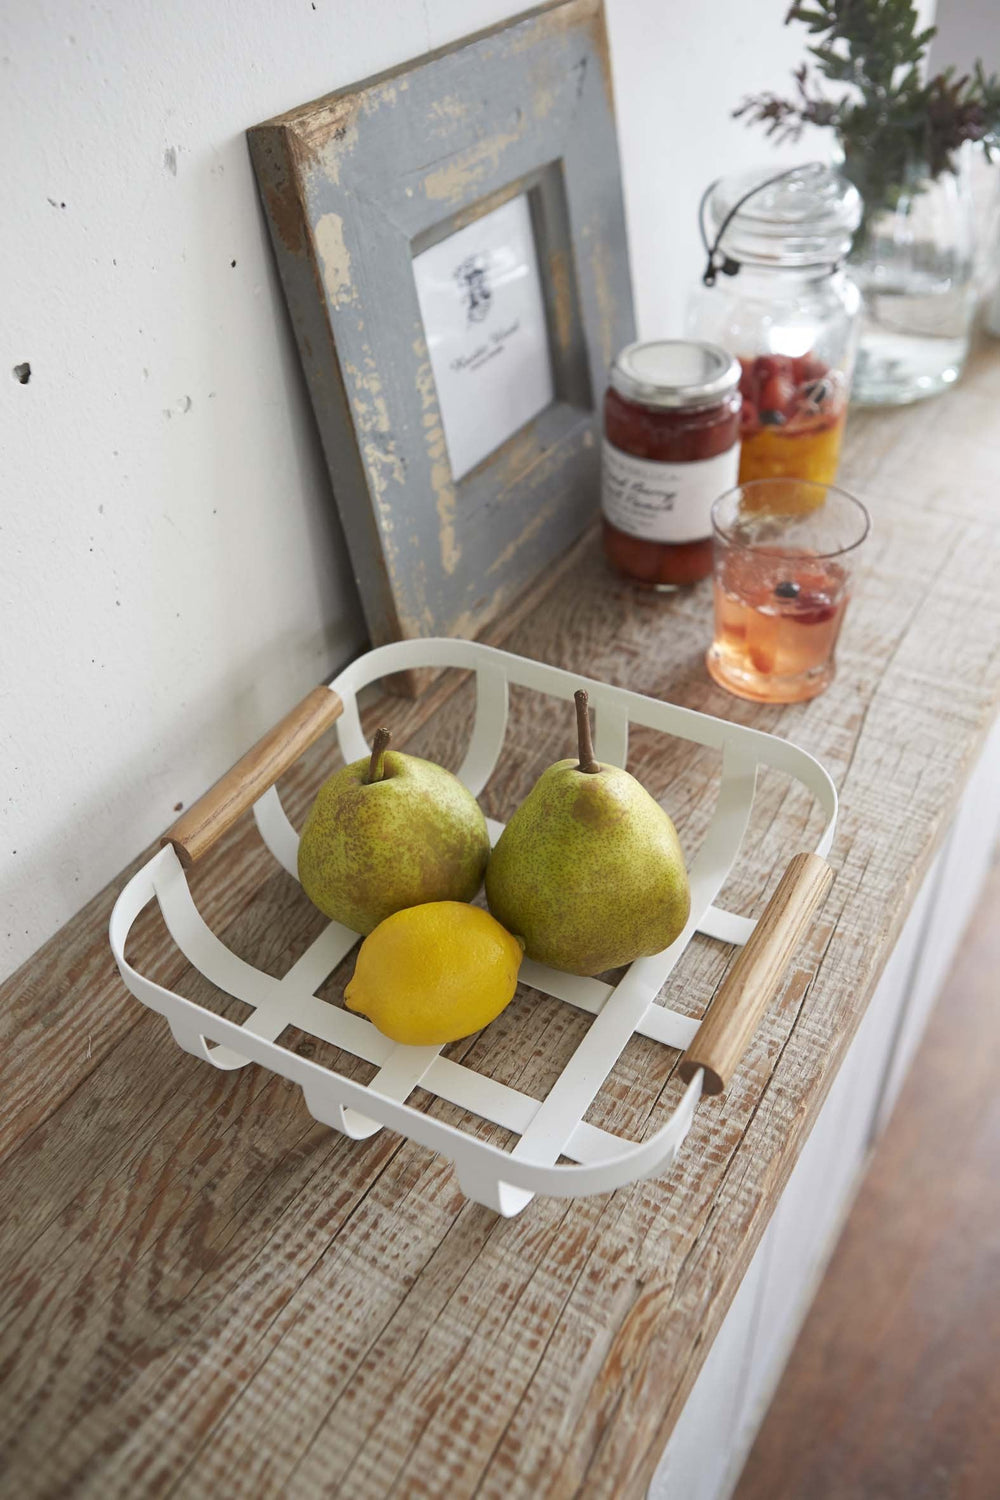 White basket by Yamazaki holding fruit on kitchen shelf